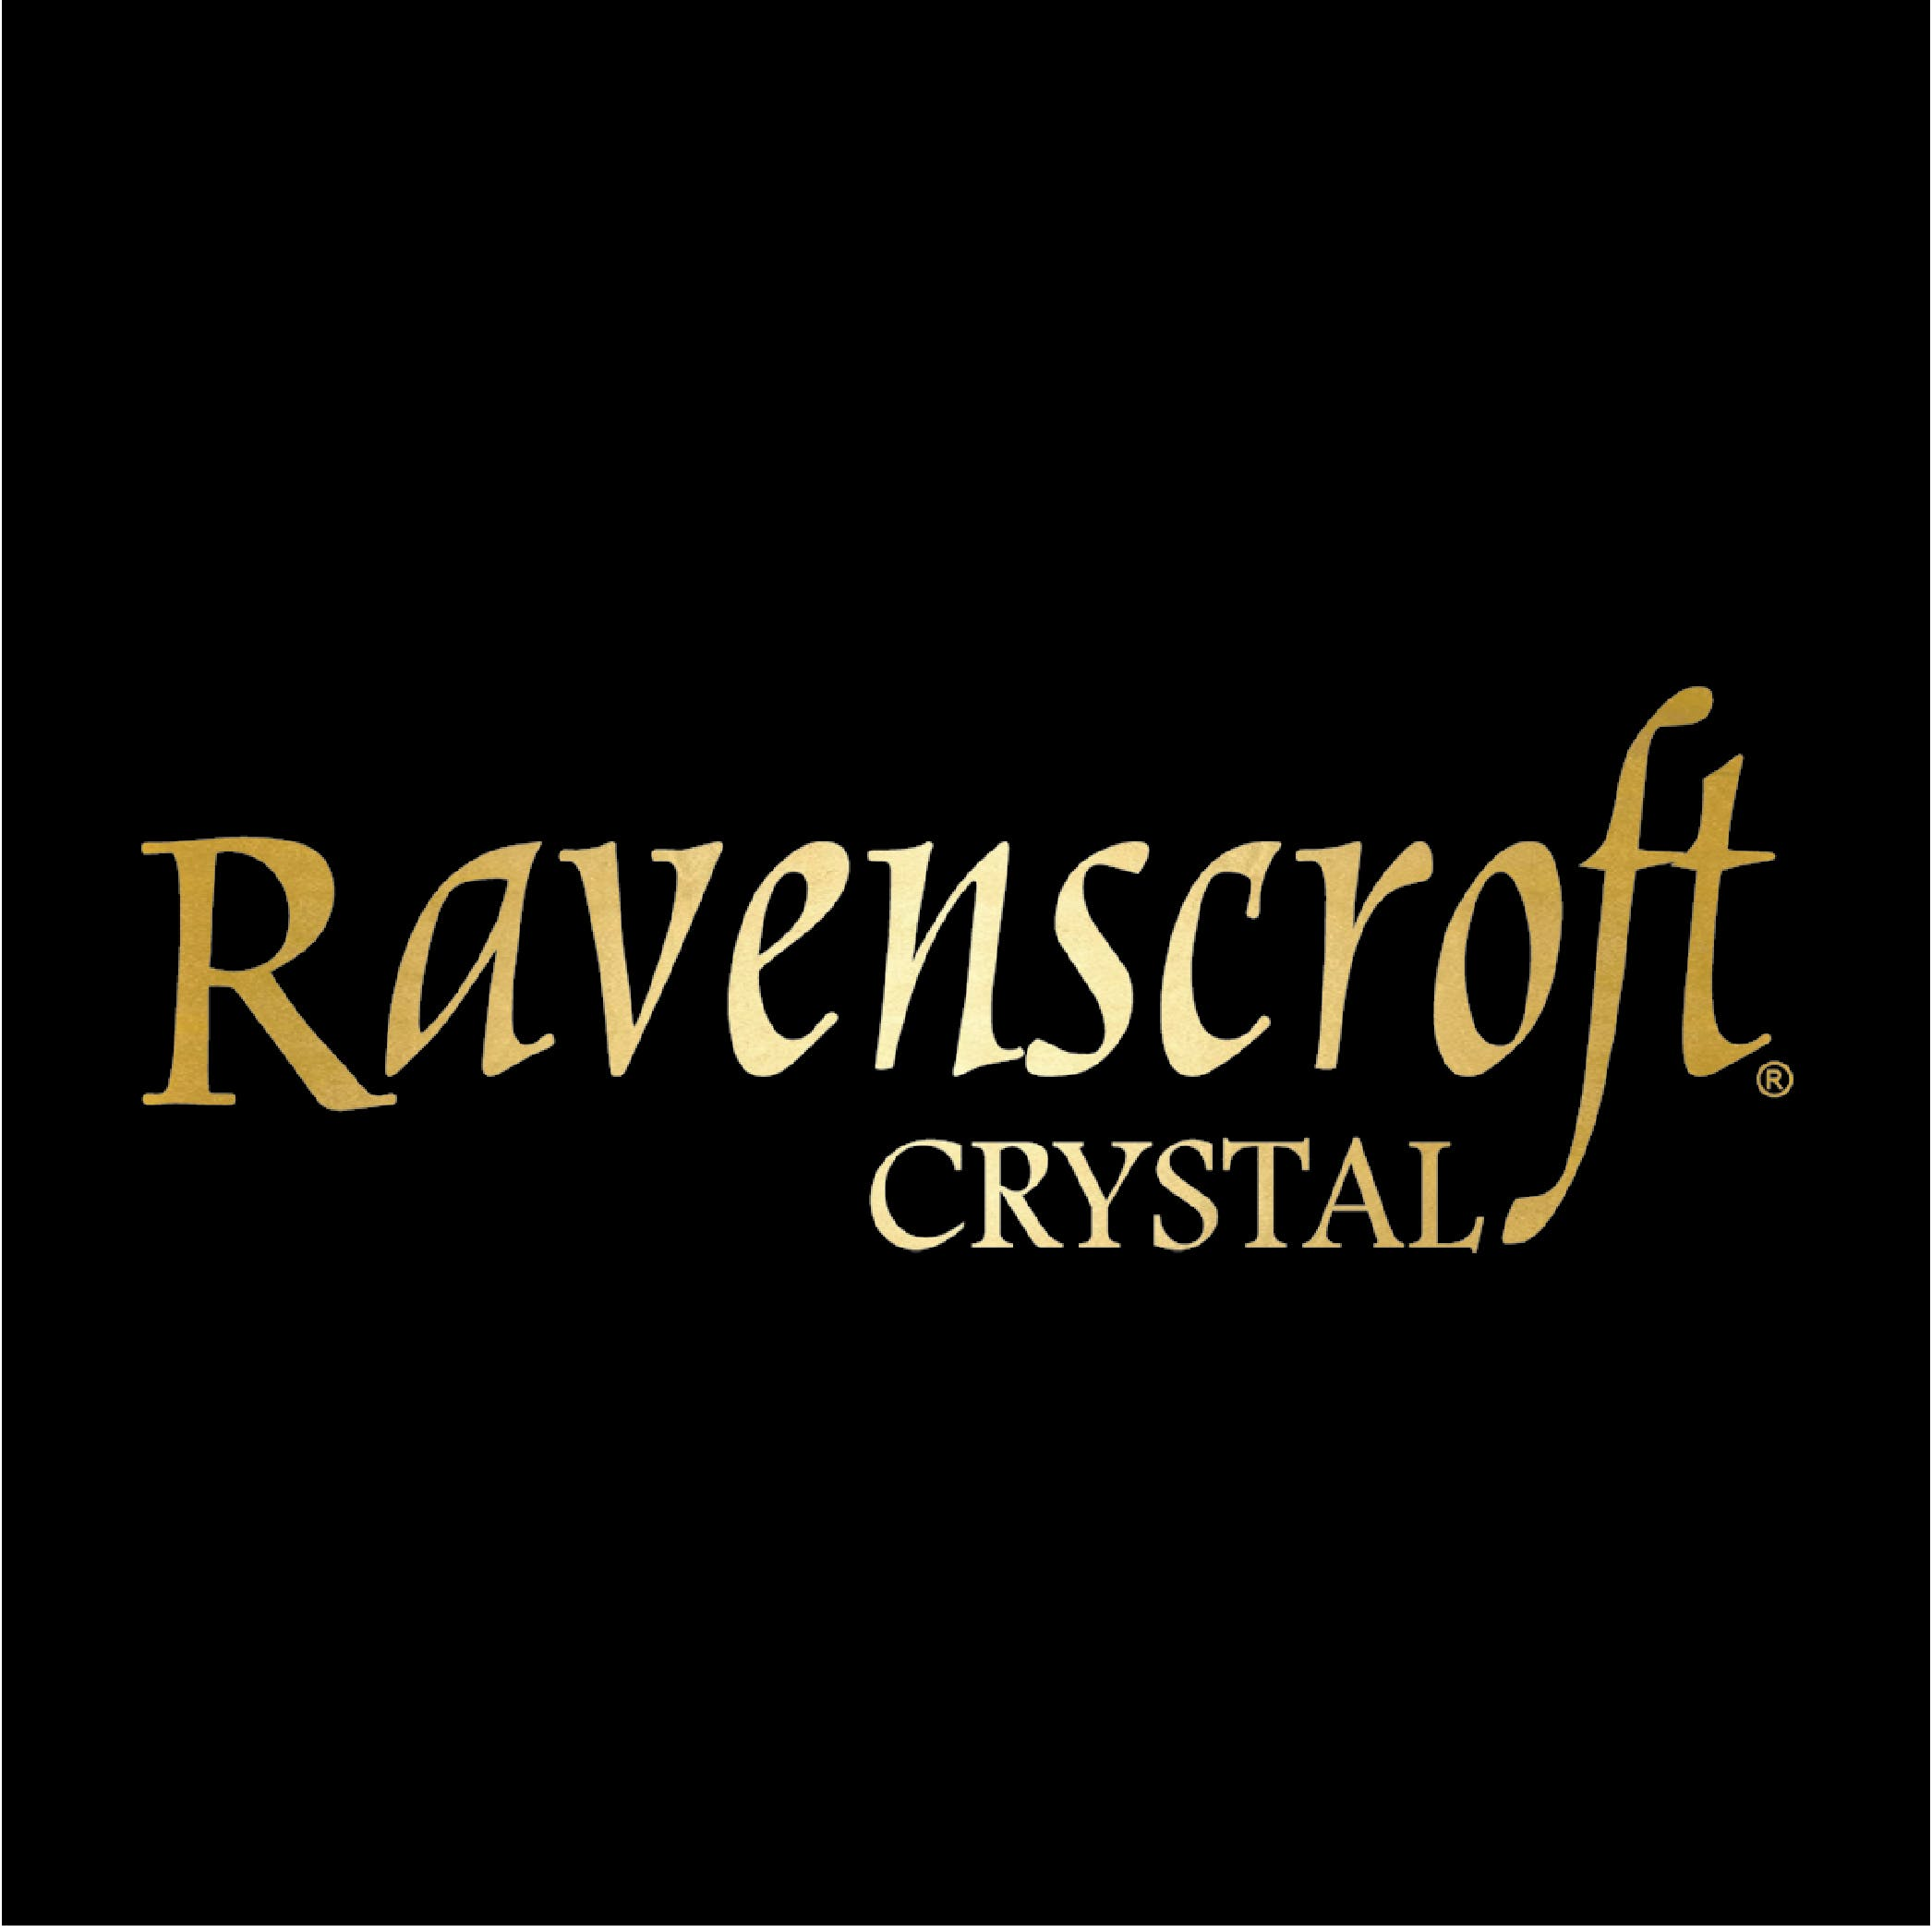 Ravenscroft Crystal